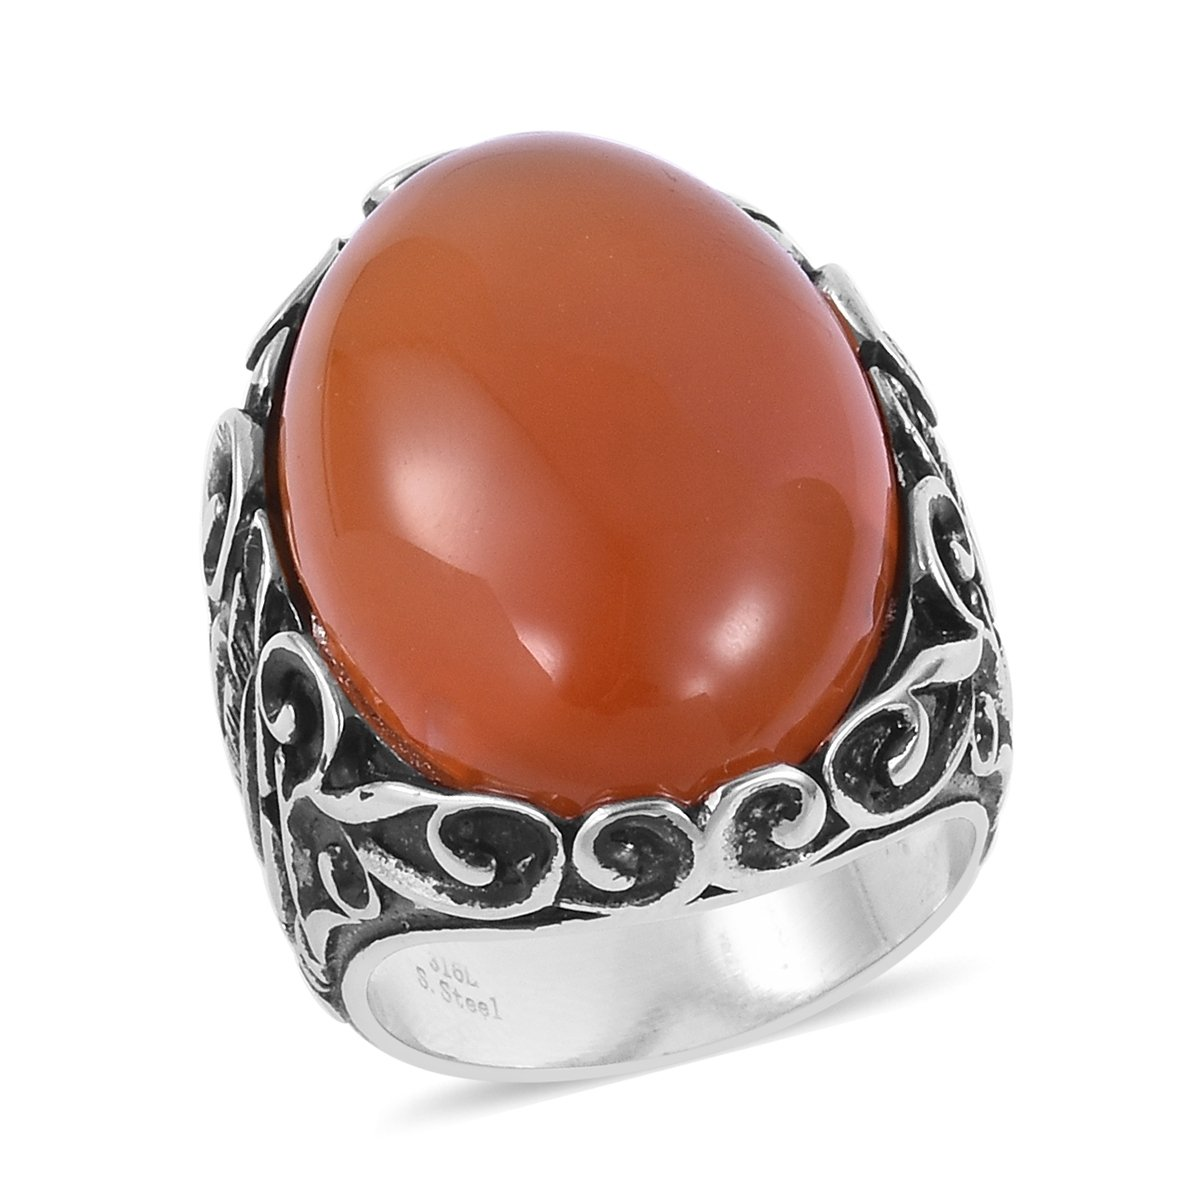 Stainless Steel Oval Dyed Orange Agate Fashion Ring for Women Size 7